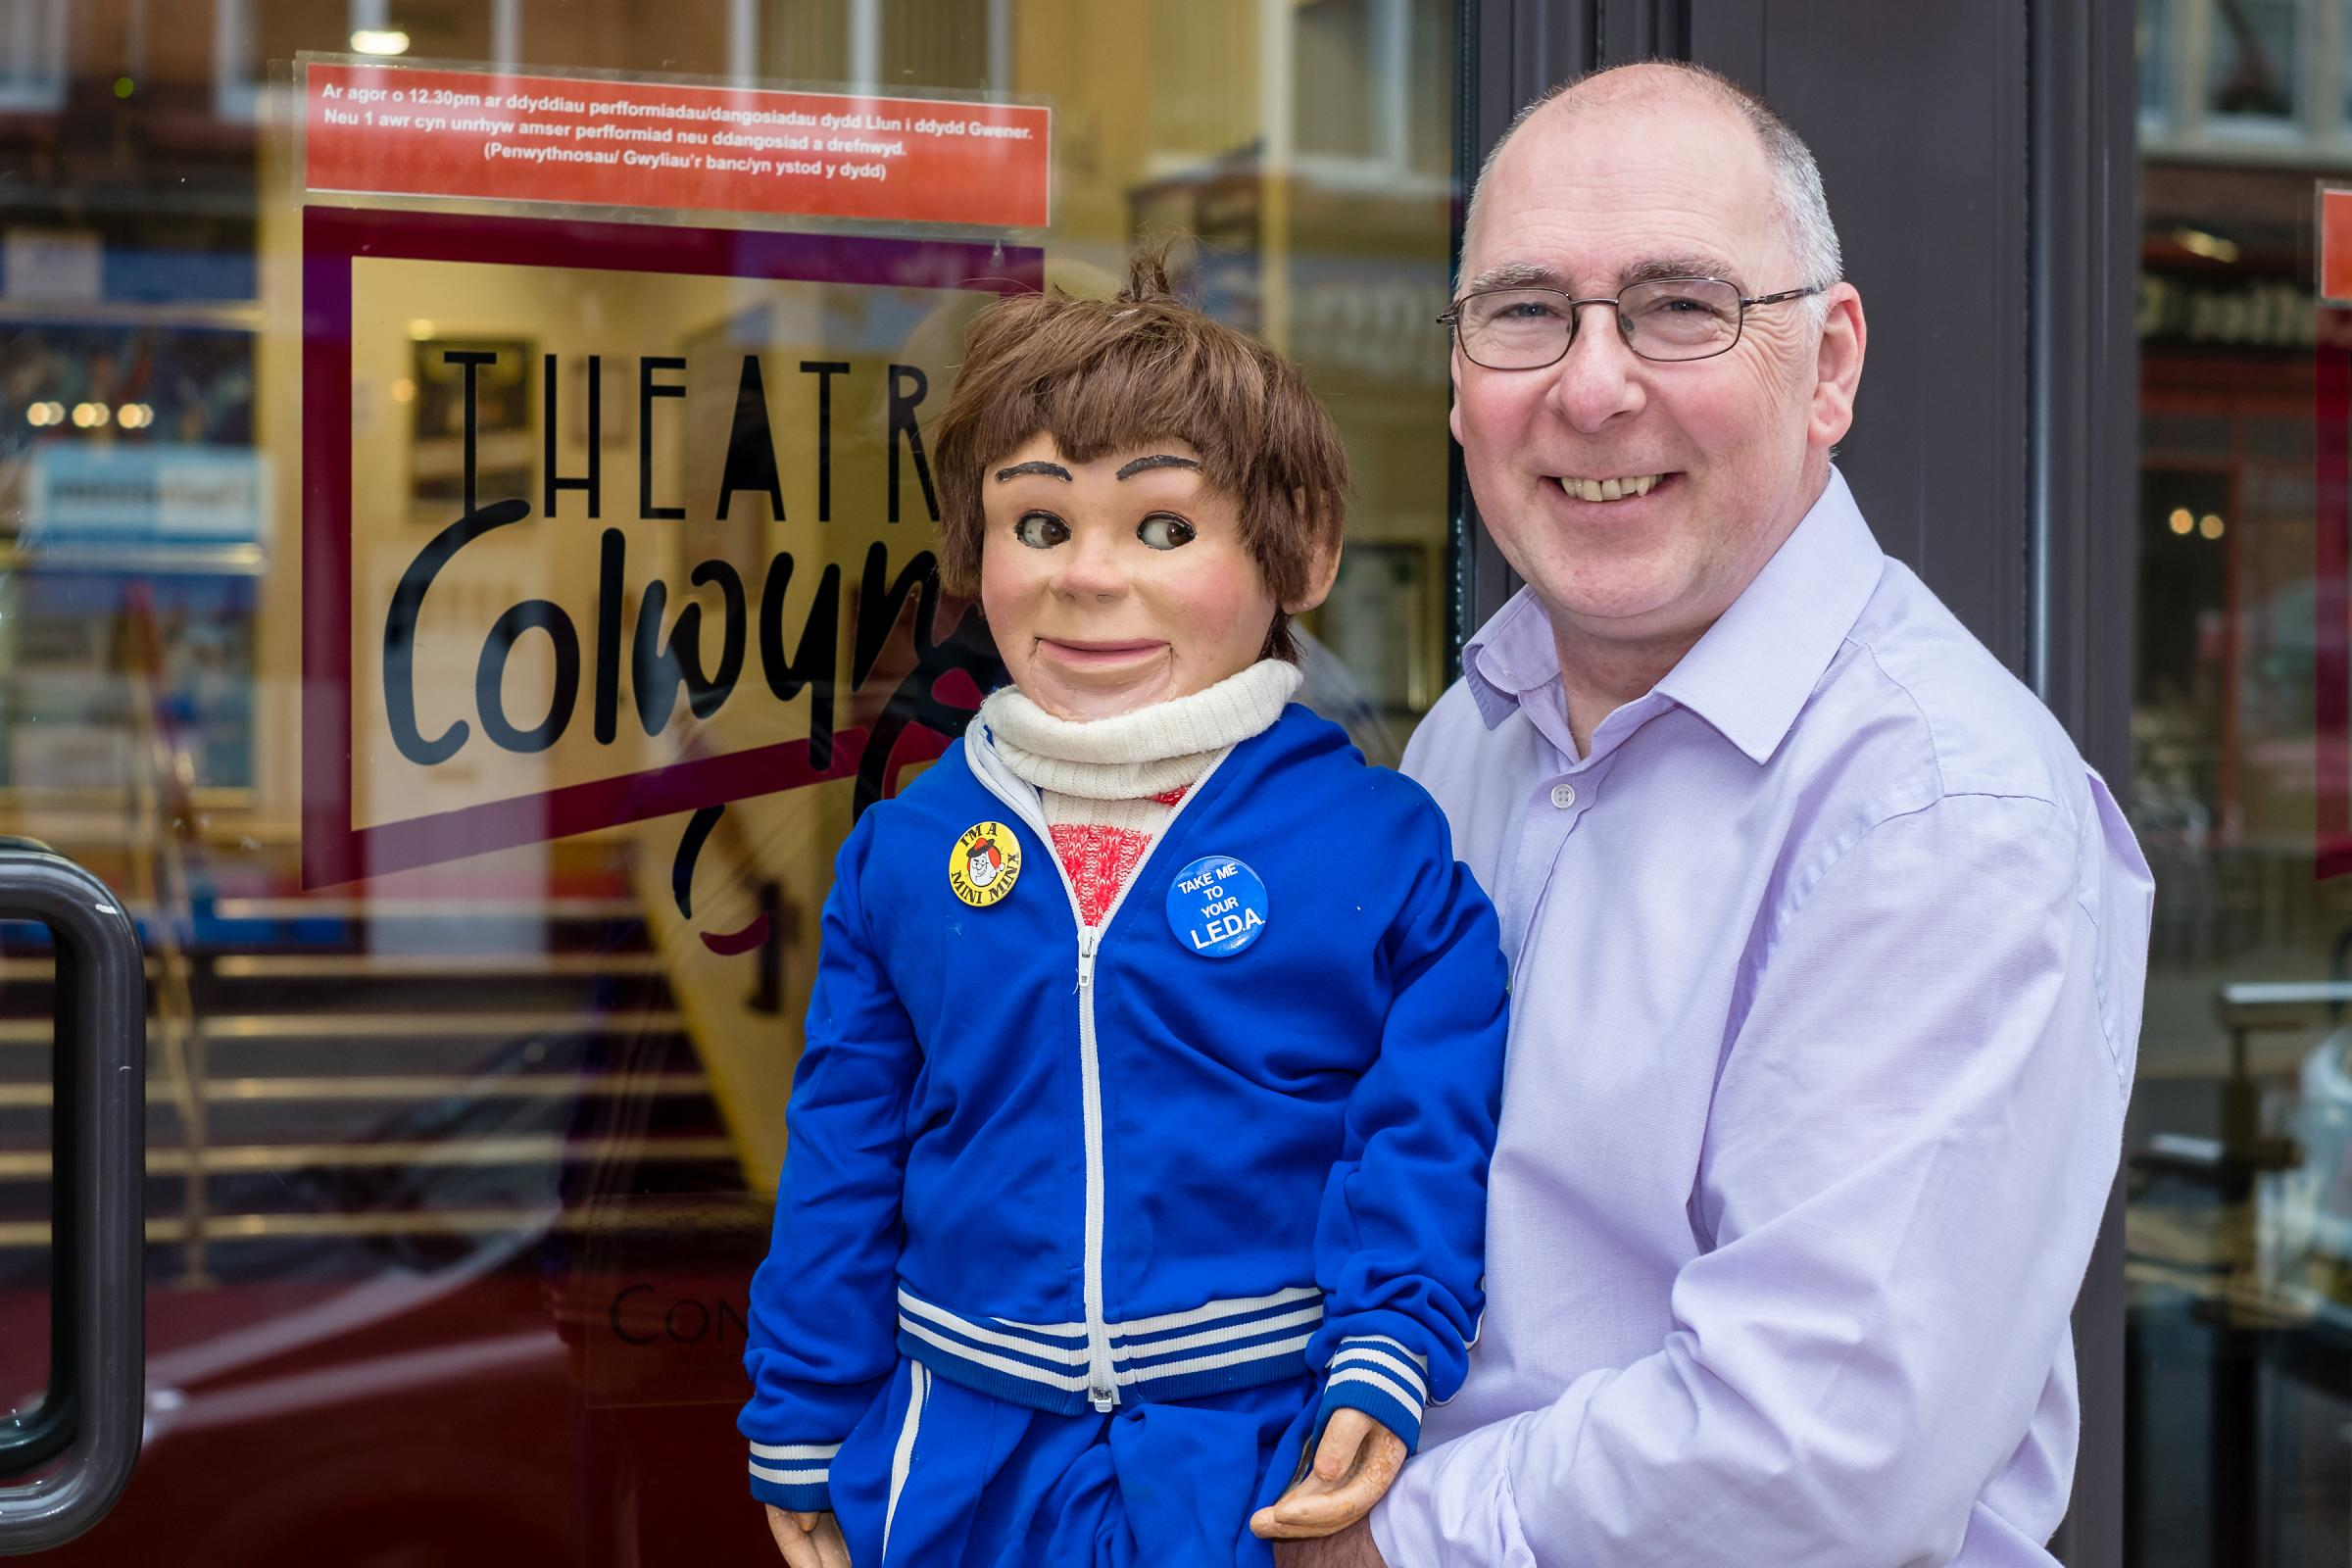 Phil Batty and his ventiloquist dummy Charles